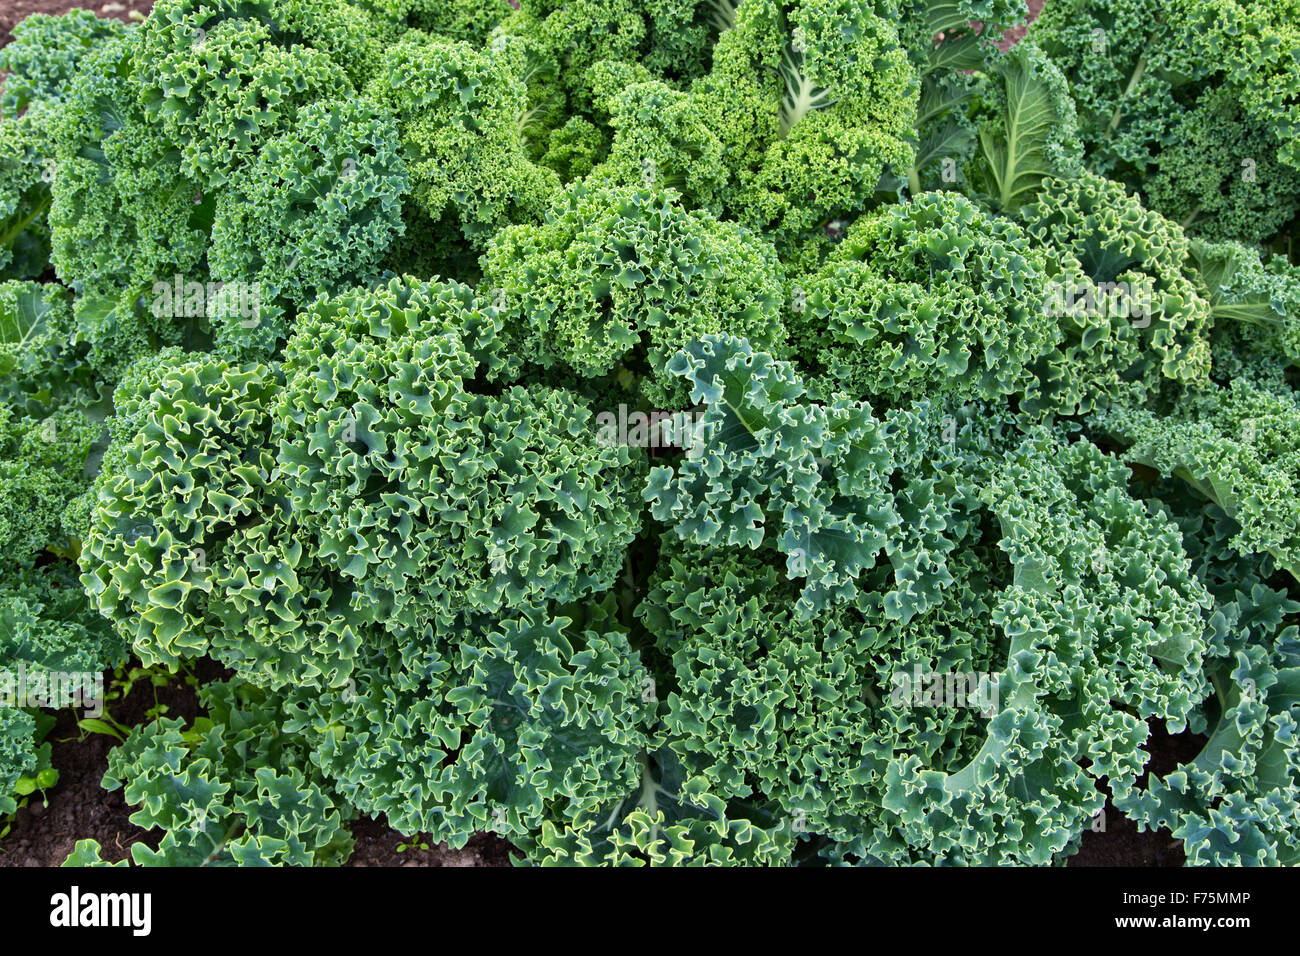 Close-up of 'Green Curly' organic Kale leaves growing. - Stock Image